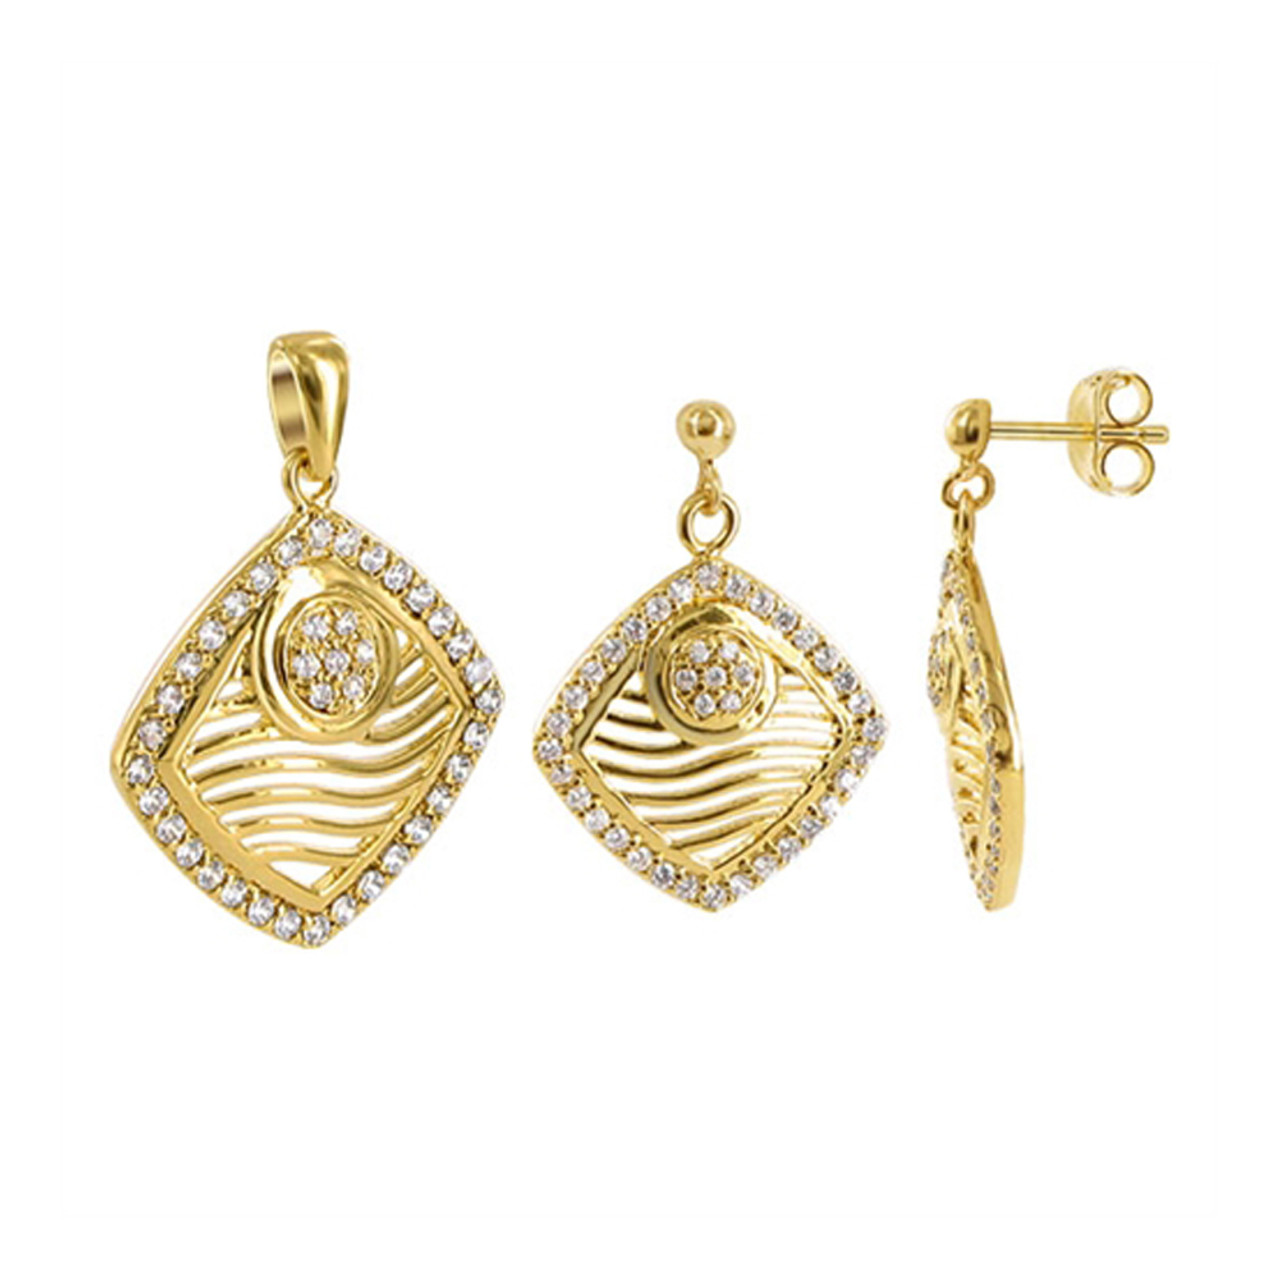 Gold Plated Clear CZ Earrings and Pendant Jewelry Set